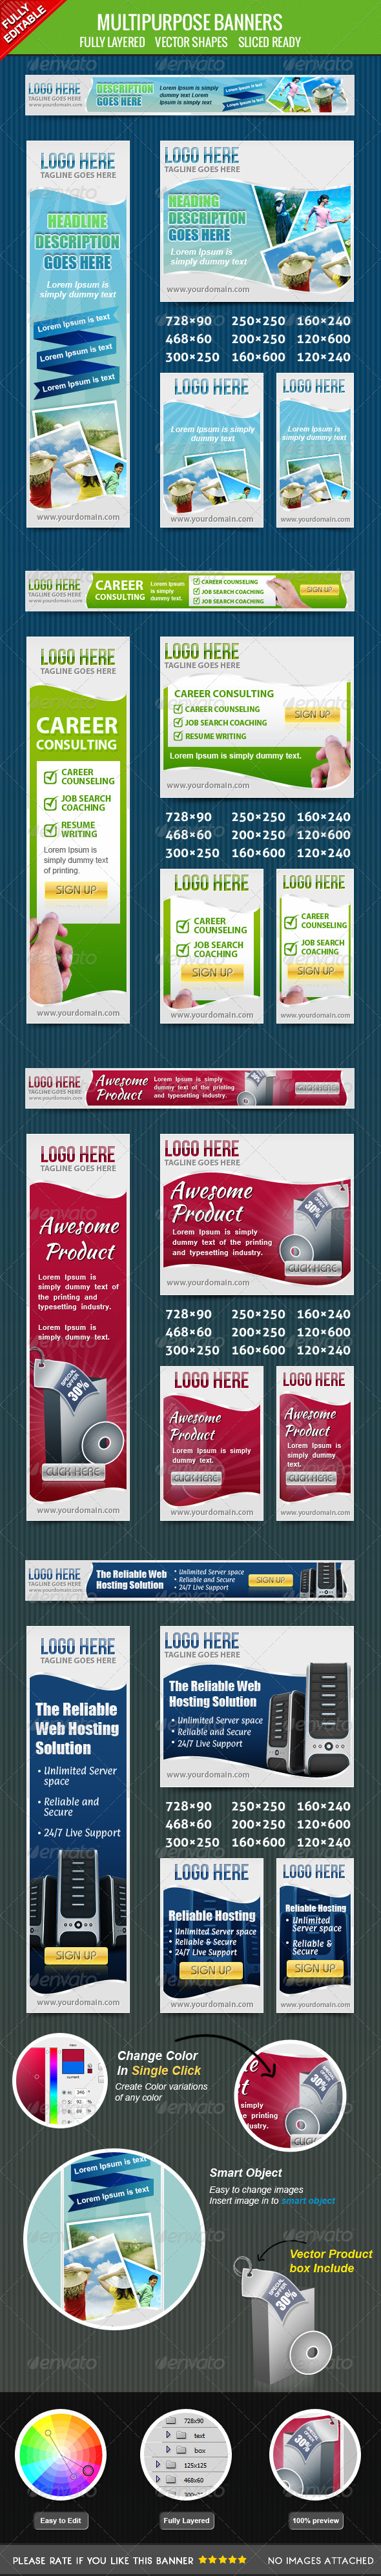 GraphicRiver Multiporpose Banners 4410052